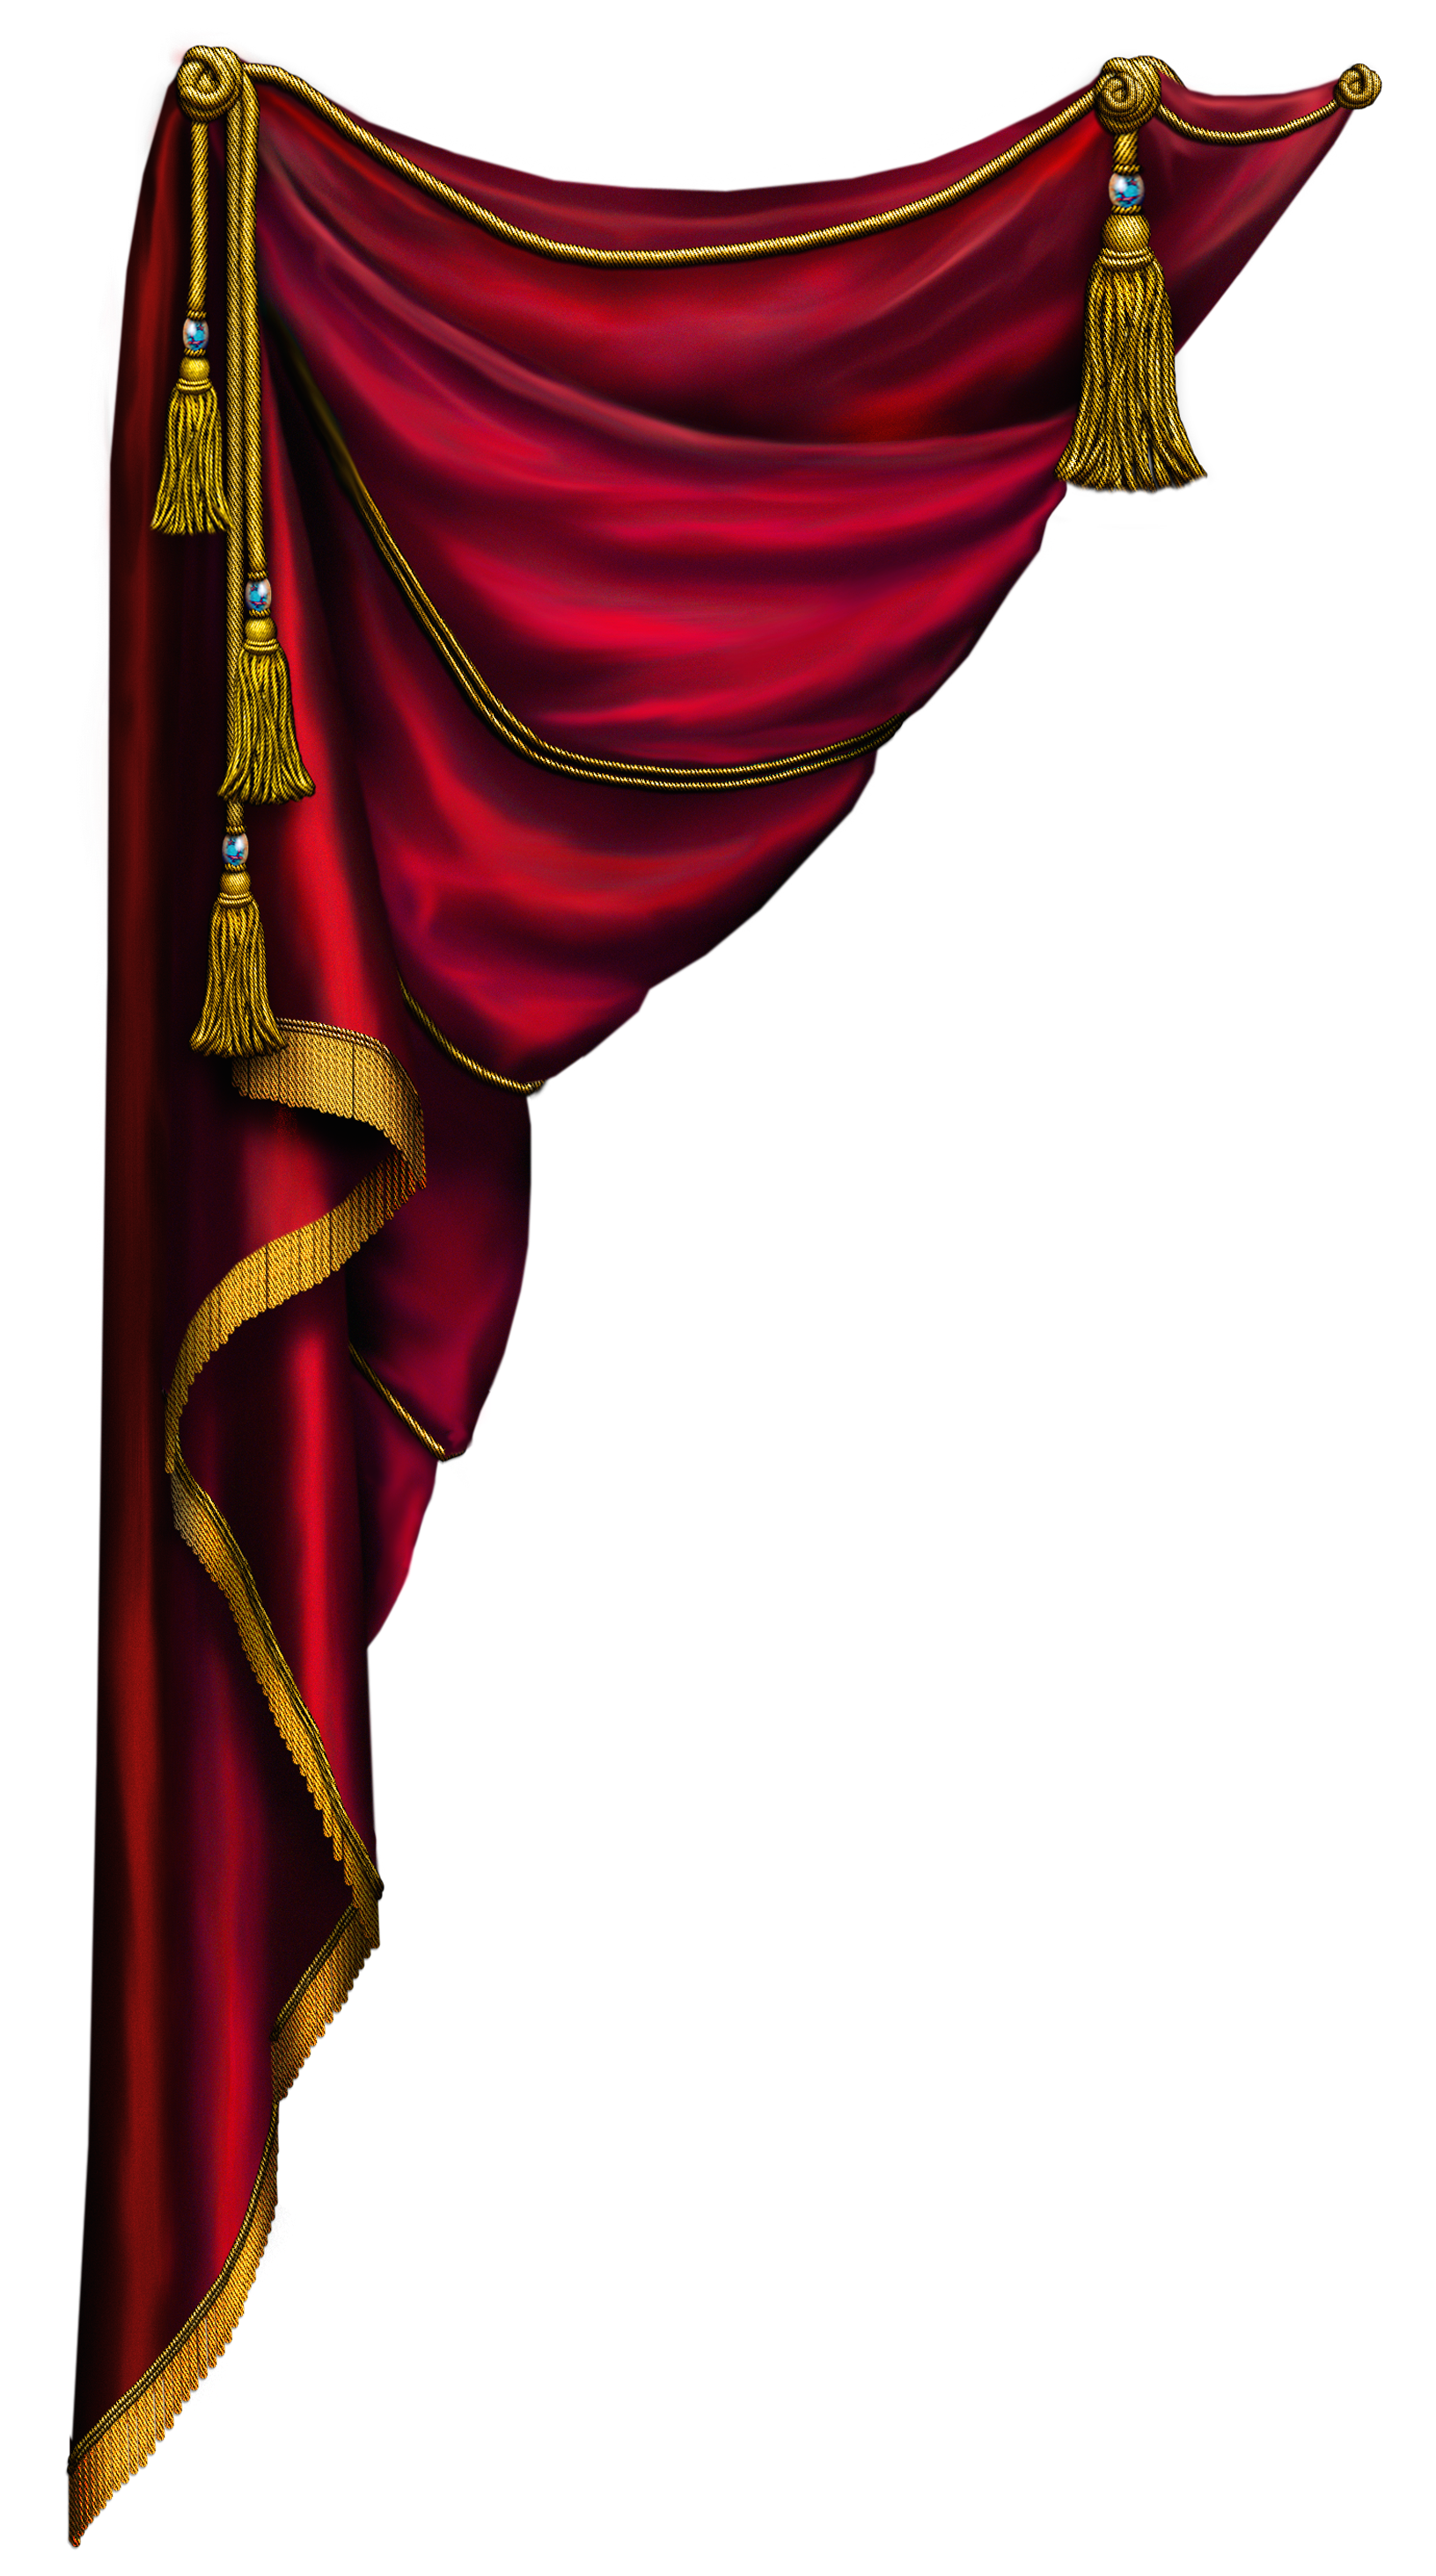 See through curtains png. Red curtain left miscellaneous